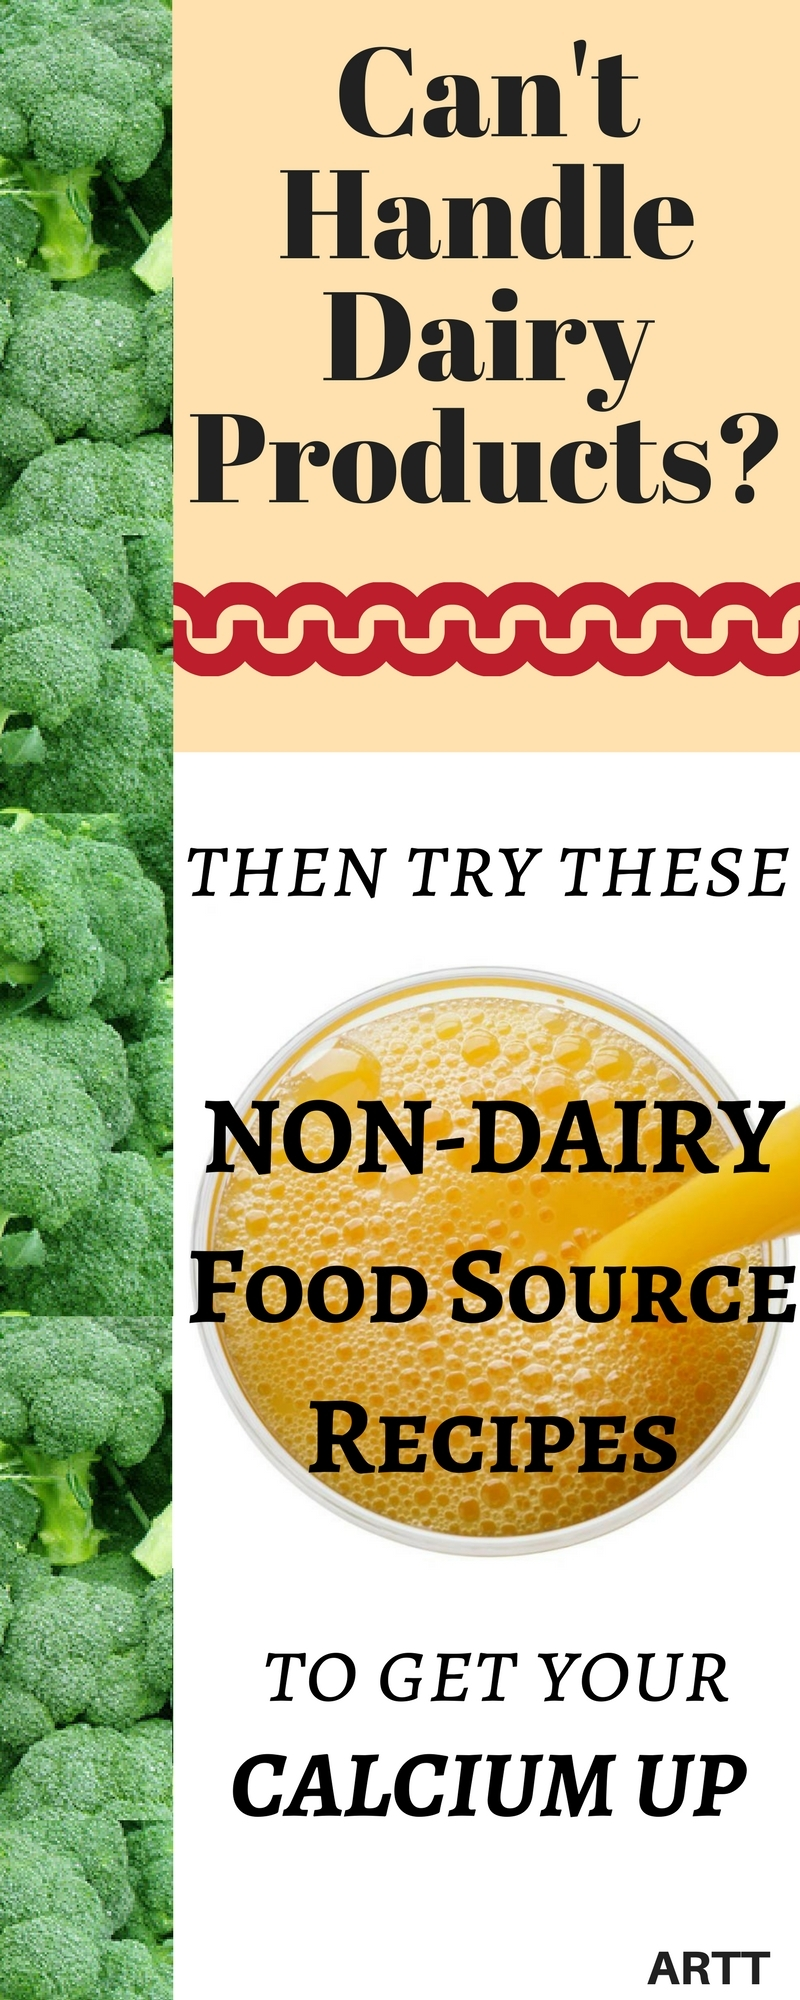 Non-Dairy Calcium Sources That Boost Your Calcium Levels - Important Information for Your Health #nondairycalcium  #calcium  #calciumsupplements #lactose #lactosefree  | non dairy calcium recipes | non dairy calcium | calcium benefits | non dairy calcium | non-dairy calcium | calcium dairy free | calcium rich food | non dairy recipes | lactose free | lactose intolerant | lactose free recipes | lactose intolerant remedies | dairy free meals | dairy free recipes